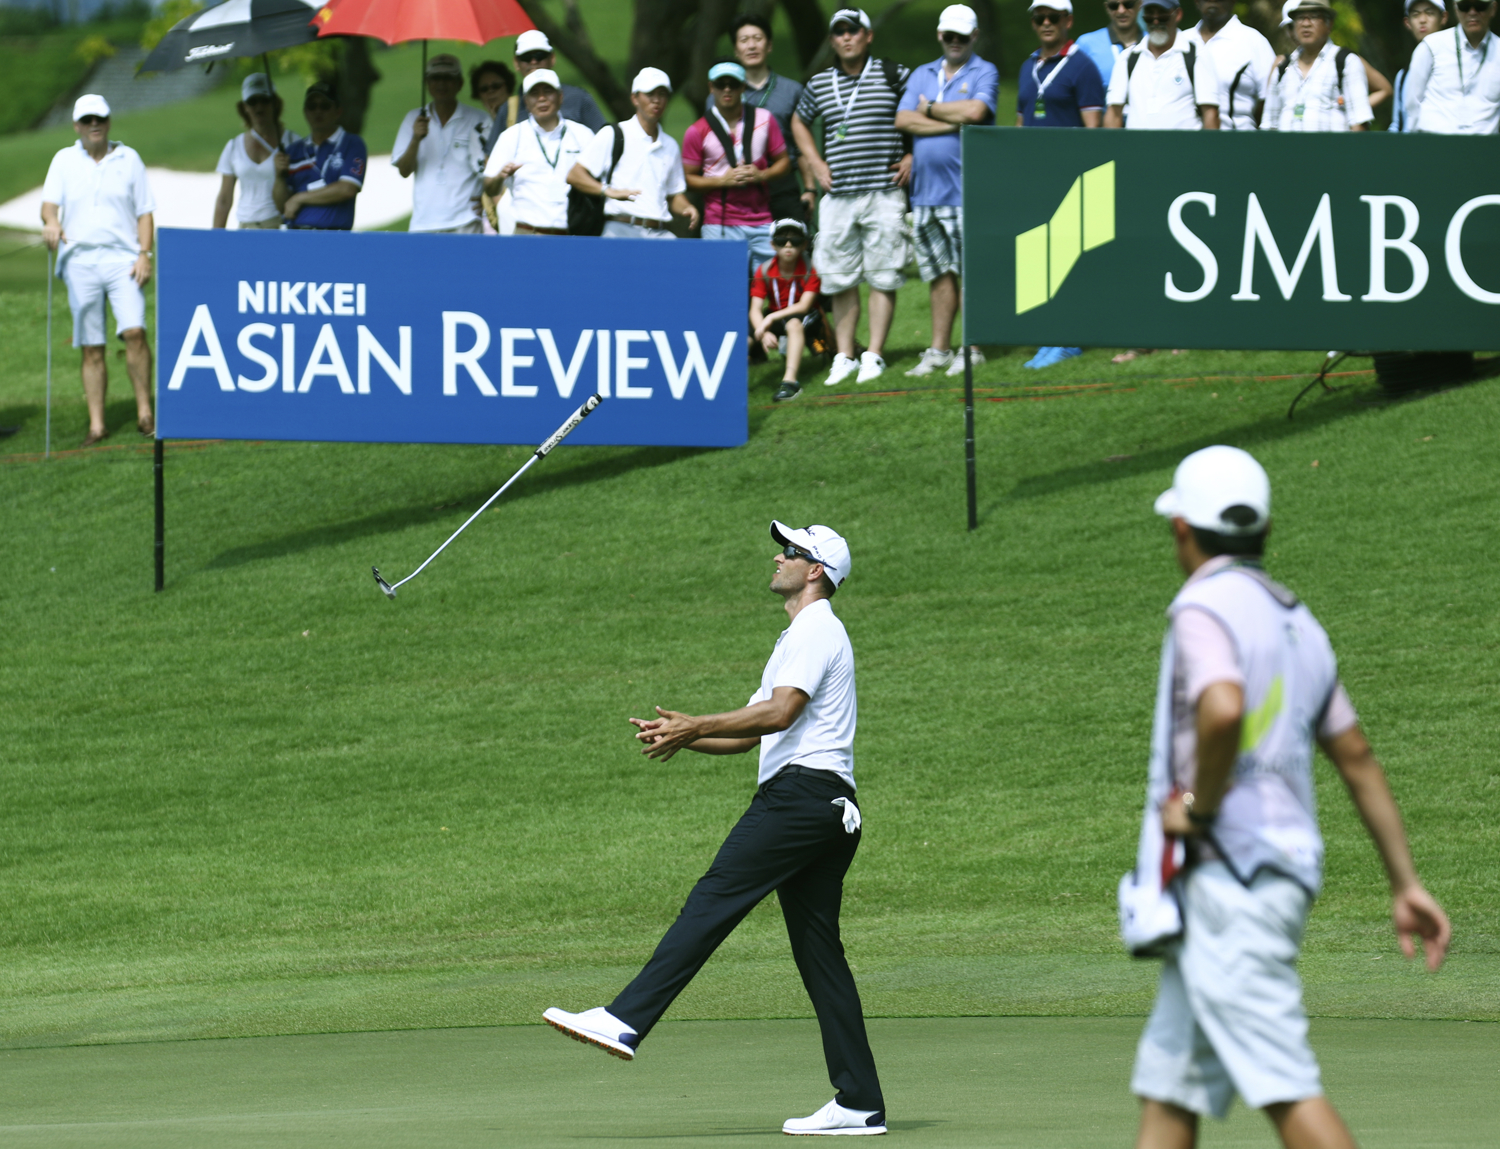 Adam Scott of Australia throws his putter after missing a putt on the ninth hole during the first round of the SMBC Singapore Open golf tournament at Sentosa's Serapong golf course in Singapore January 19, 2017.